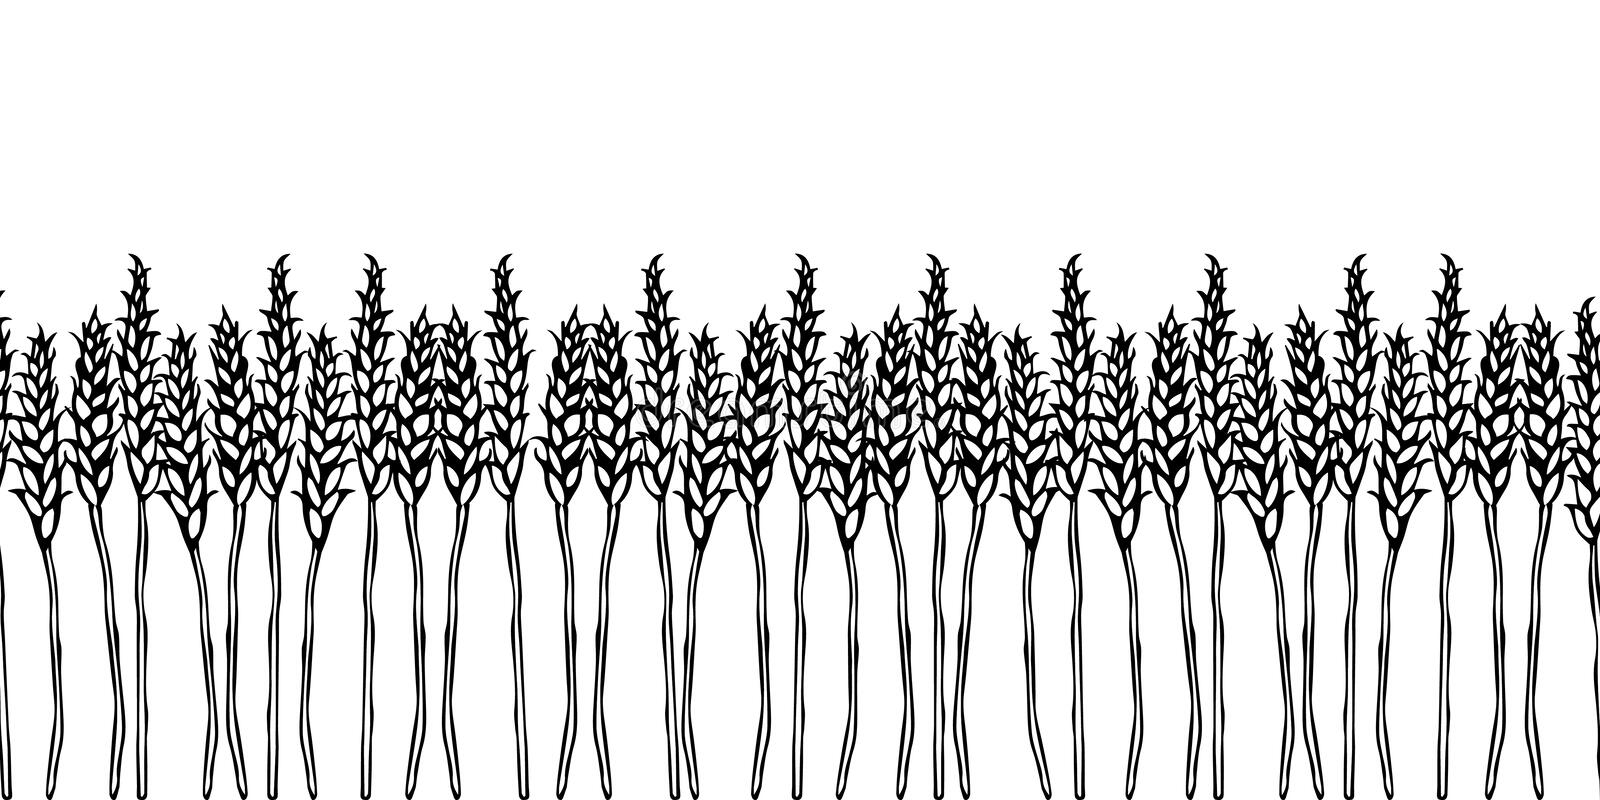 Ripe Wheat Spikelets Endless Brush. Border Ribbon of Malt with Space for Text. Farm Harvest Template. Realistic Hand Drawn Illustr. Ation. Savoyar Doodle Style royalty free illustration